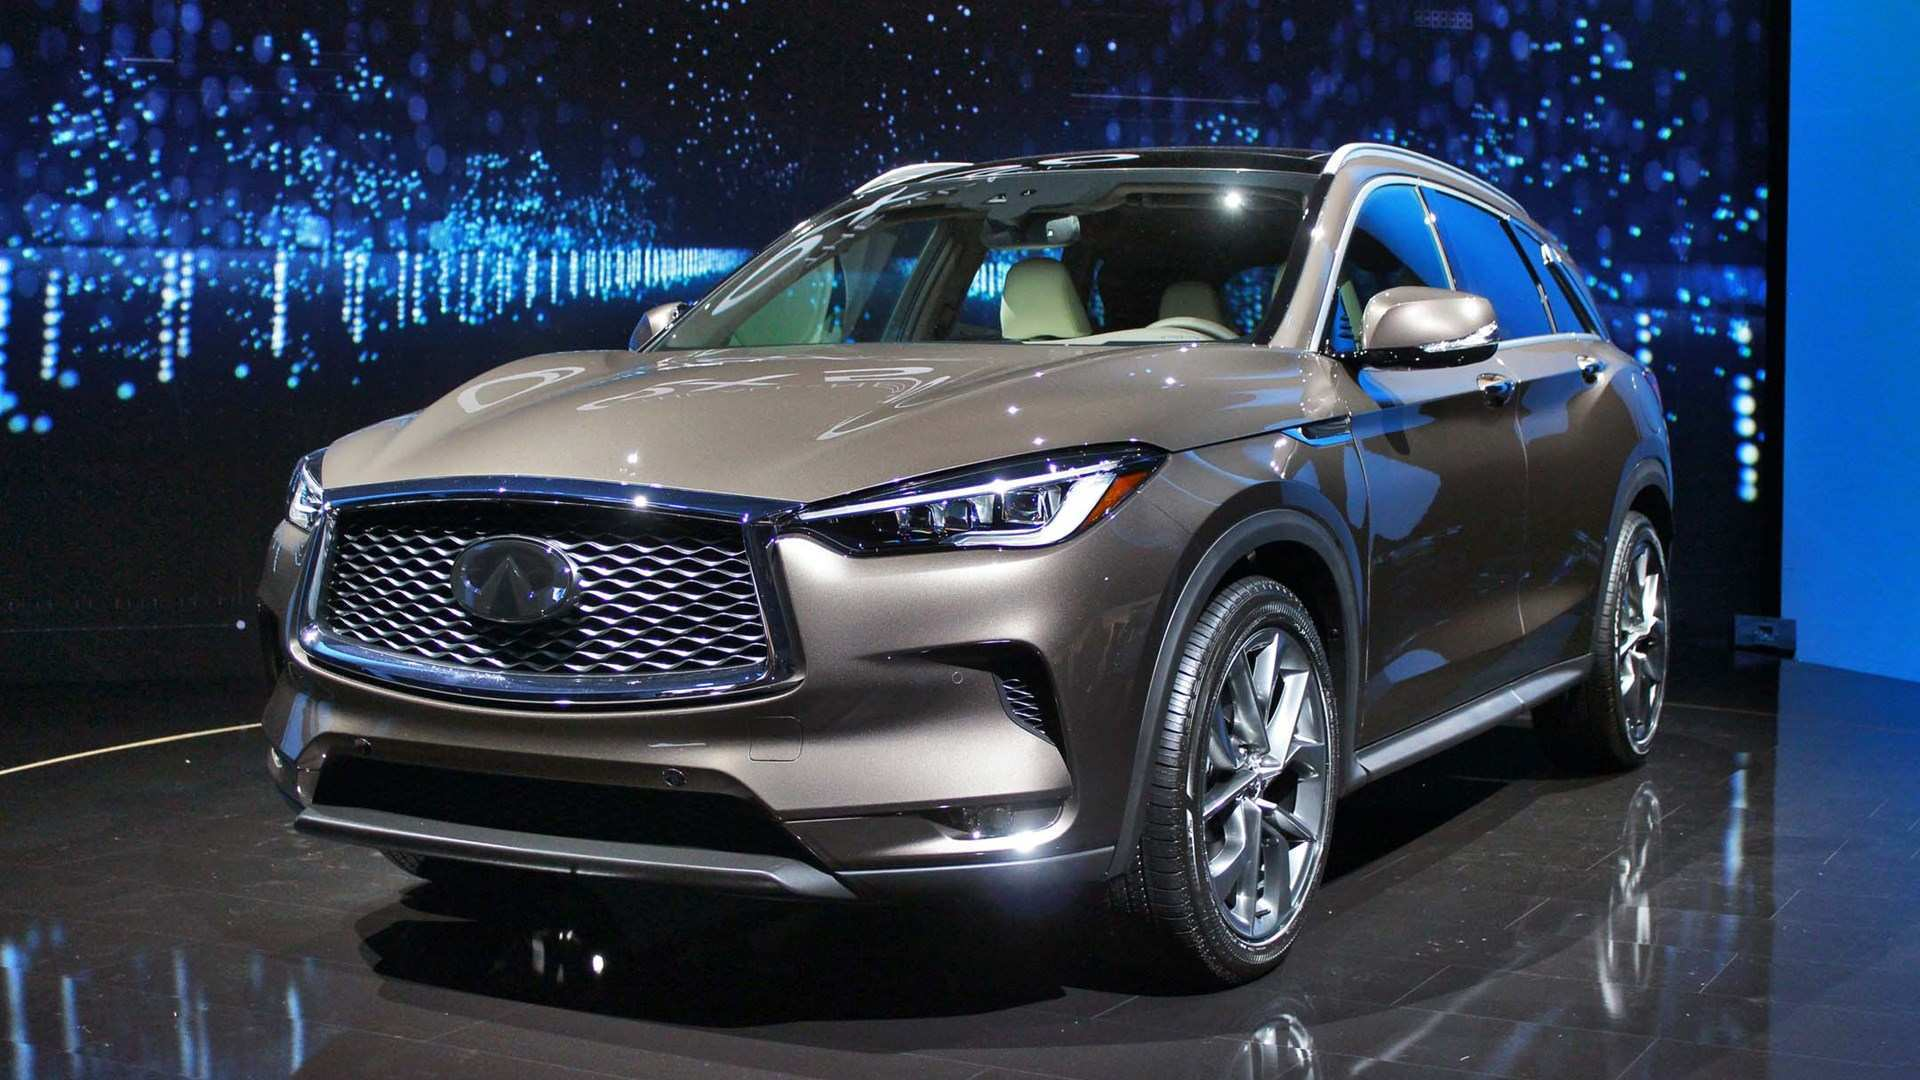 30 Best Review The Infiniti Qx50 2019 Hybrid Concept First Drive with The Infiniti Qx50 2019 Hybrid Concept